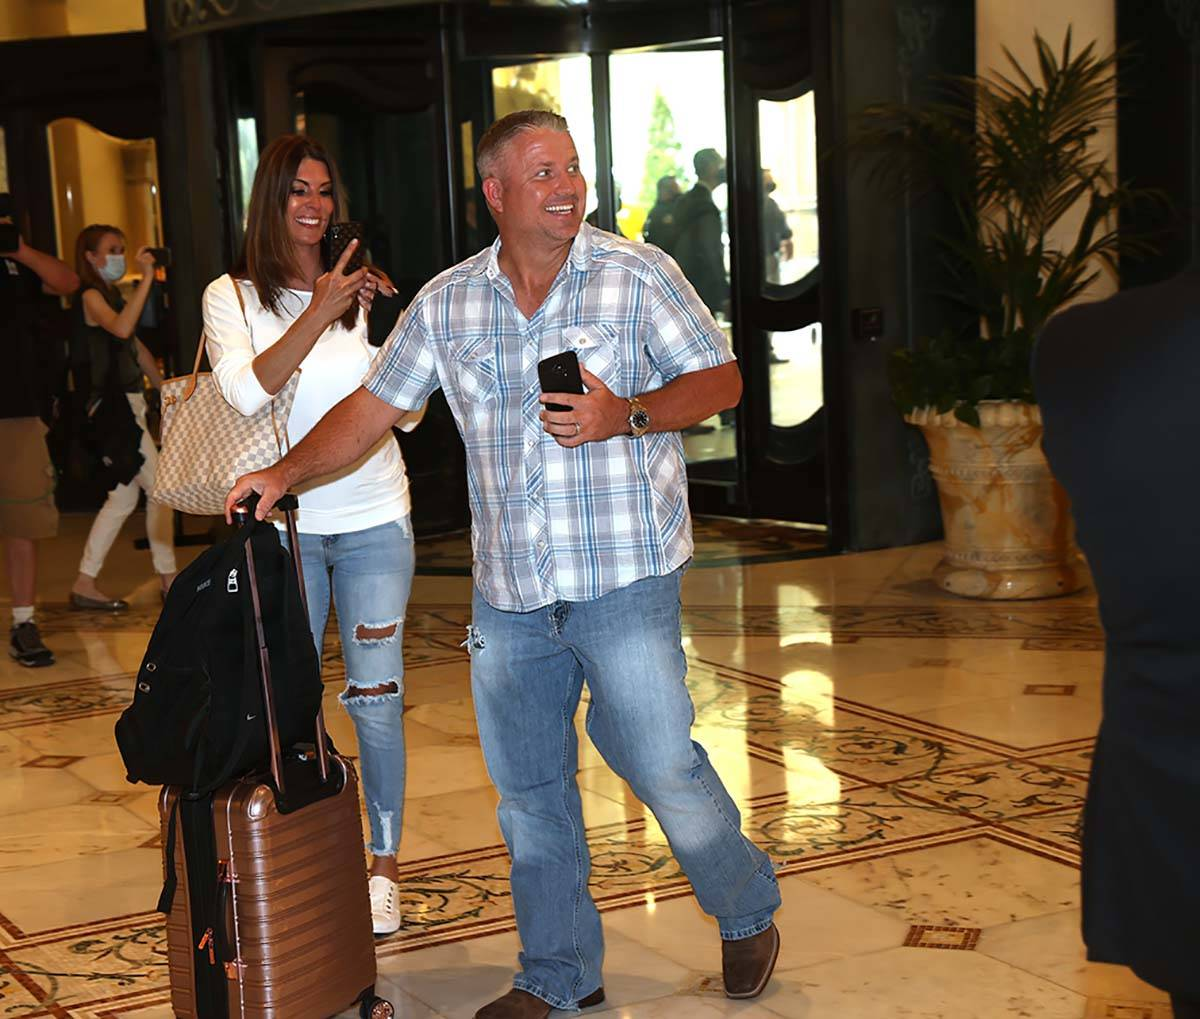 The first guests arrive at the Bellagio on the Strip in Las Vegas as the resort reopens after 7 ...